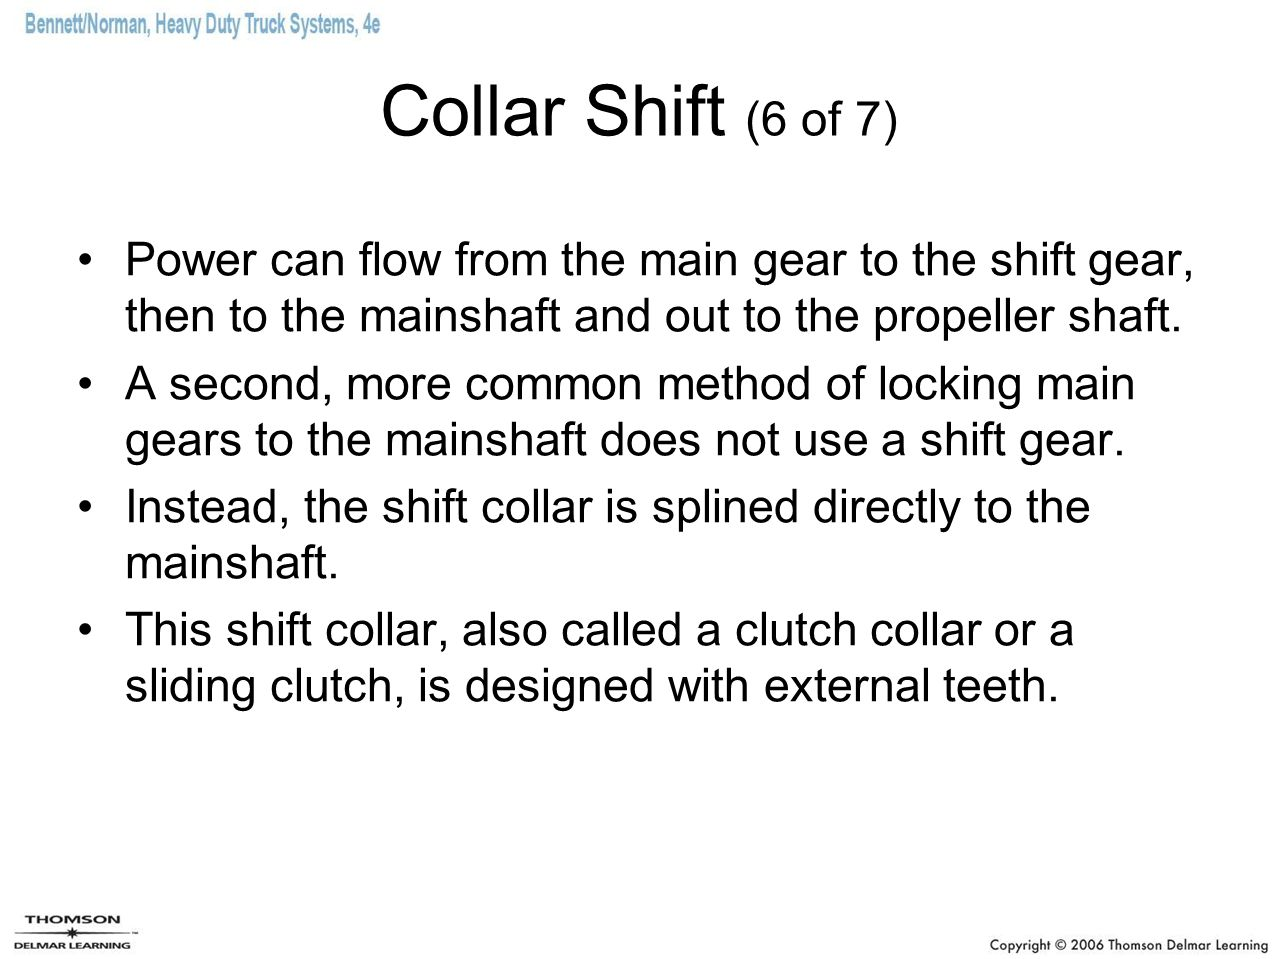 Collar Shift (6 of 7) Power can flow from the main gear to the shift gear, then to the mainshaft and out to the propeller shaft.